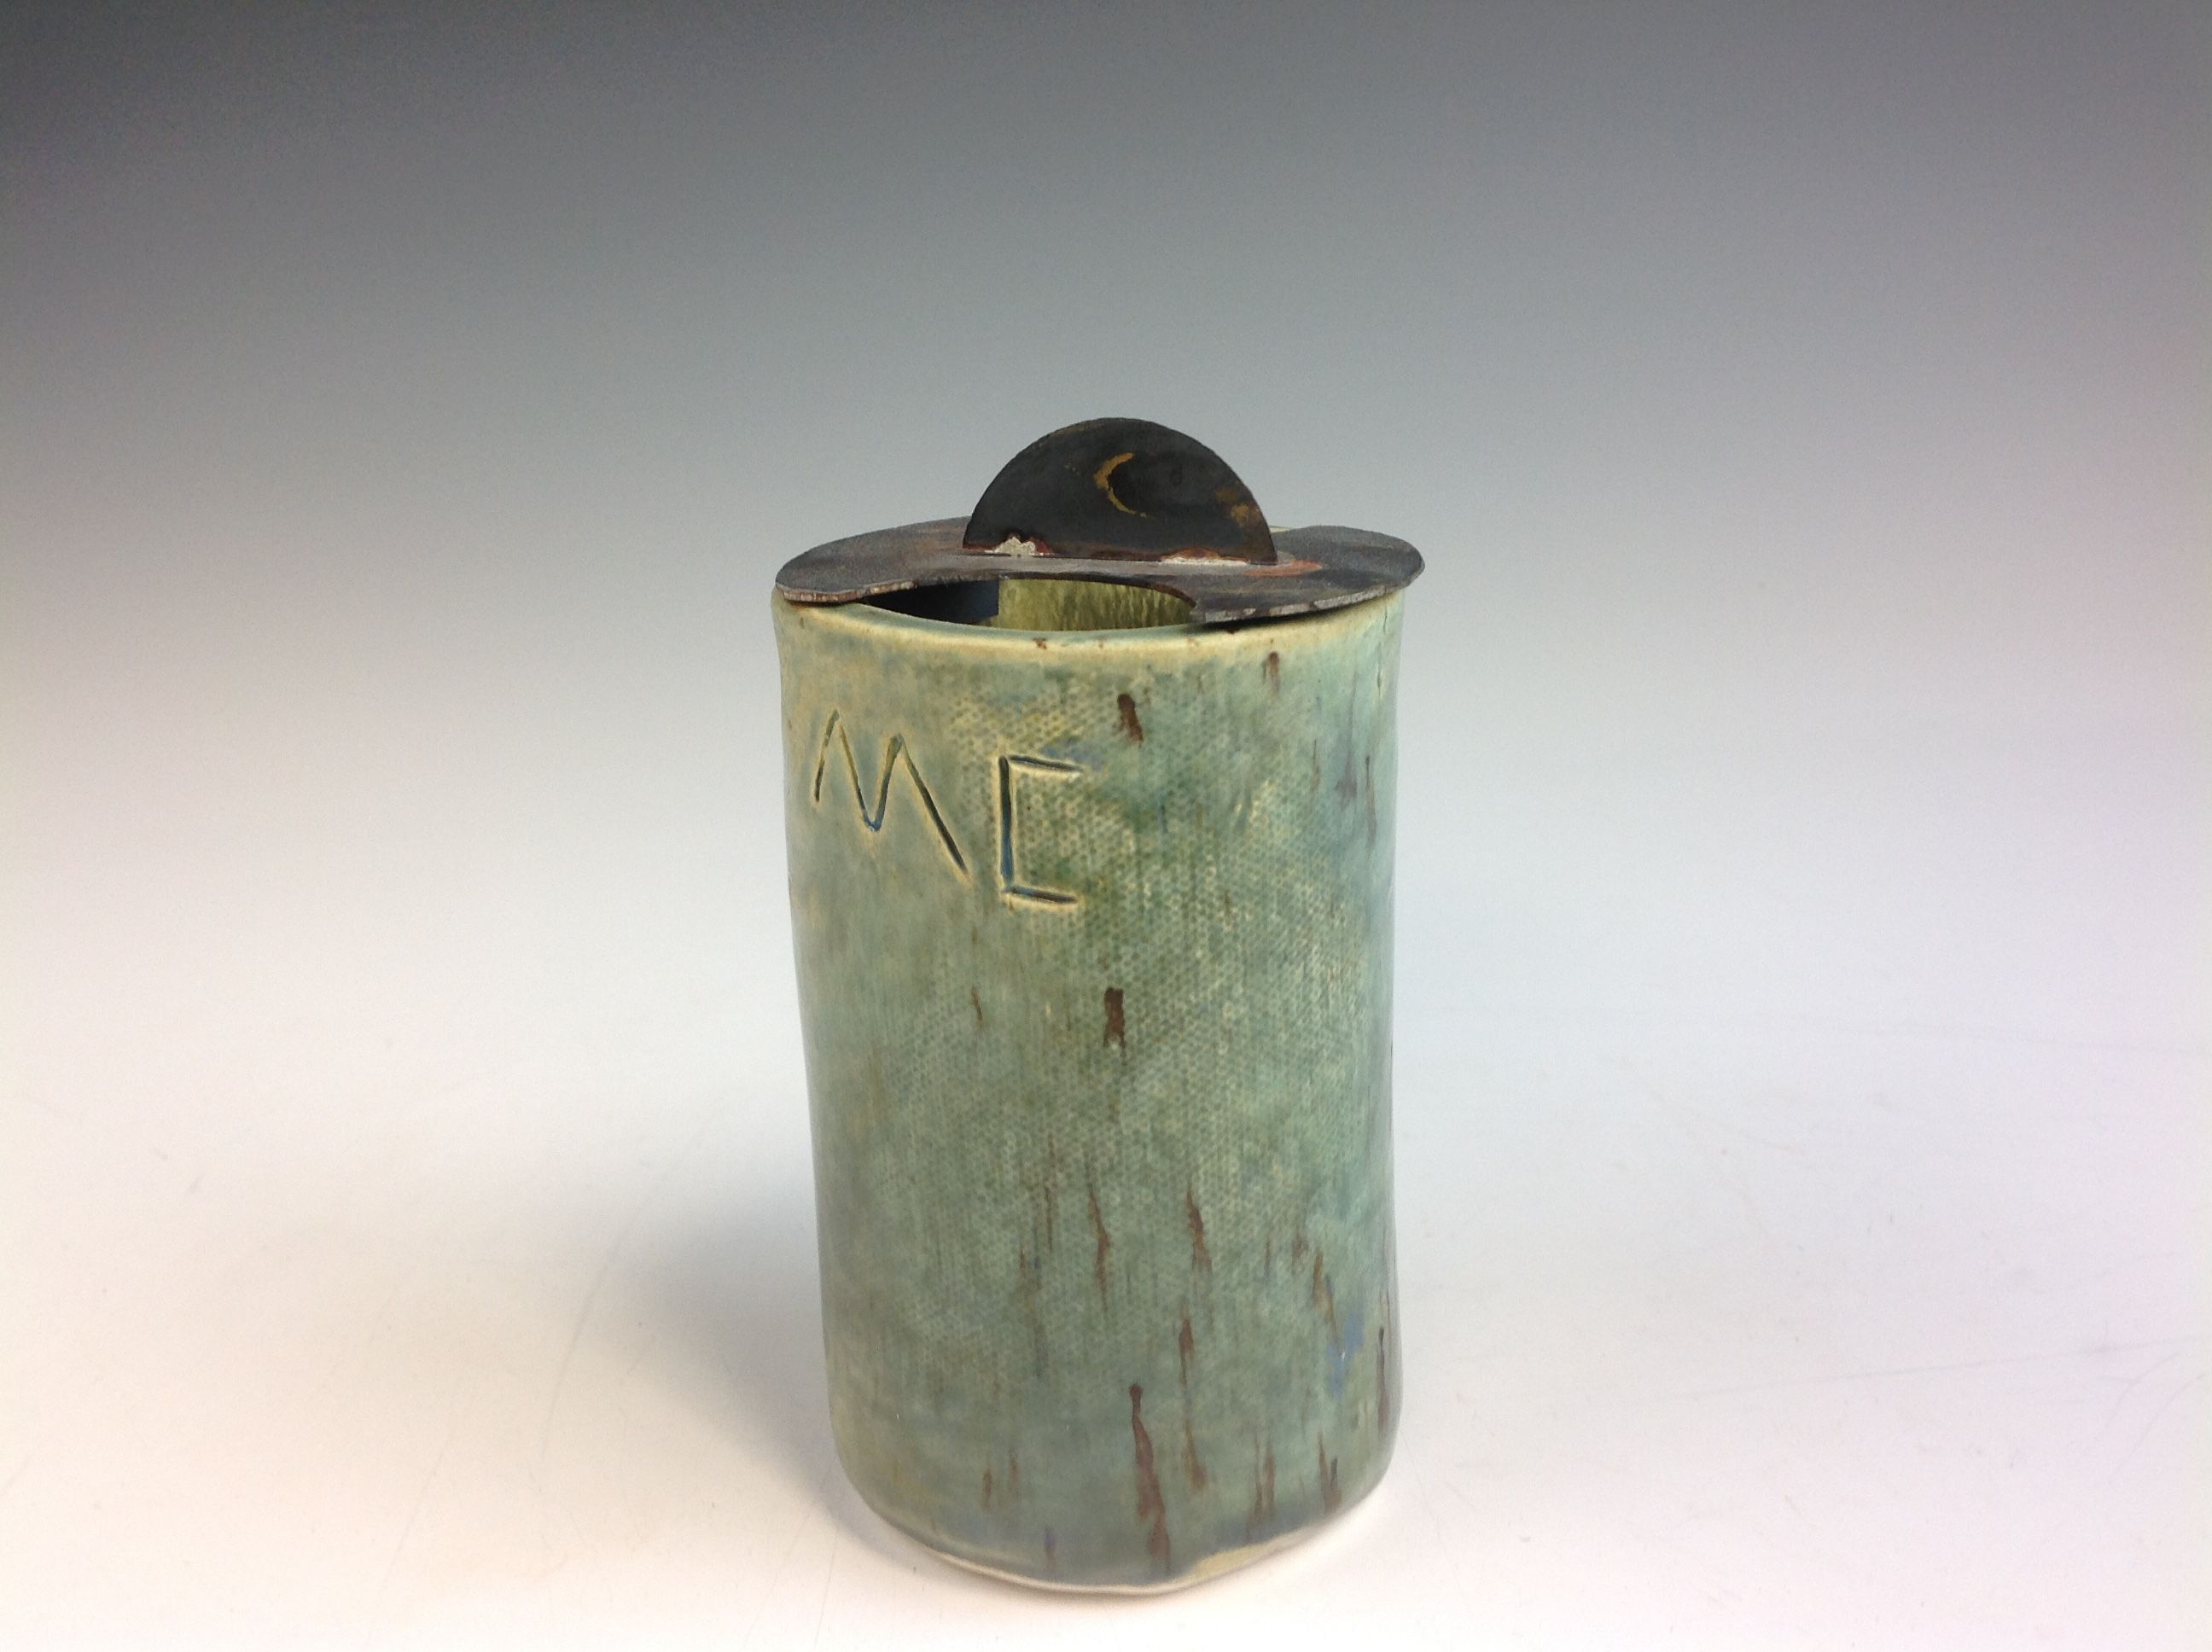 Finished product of the cylindrical lidded box